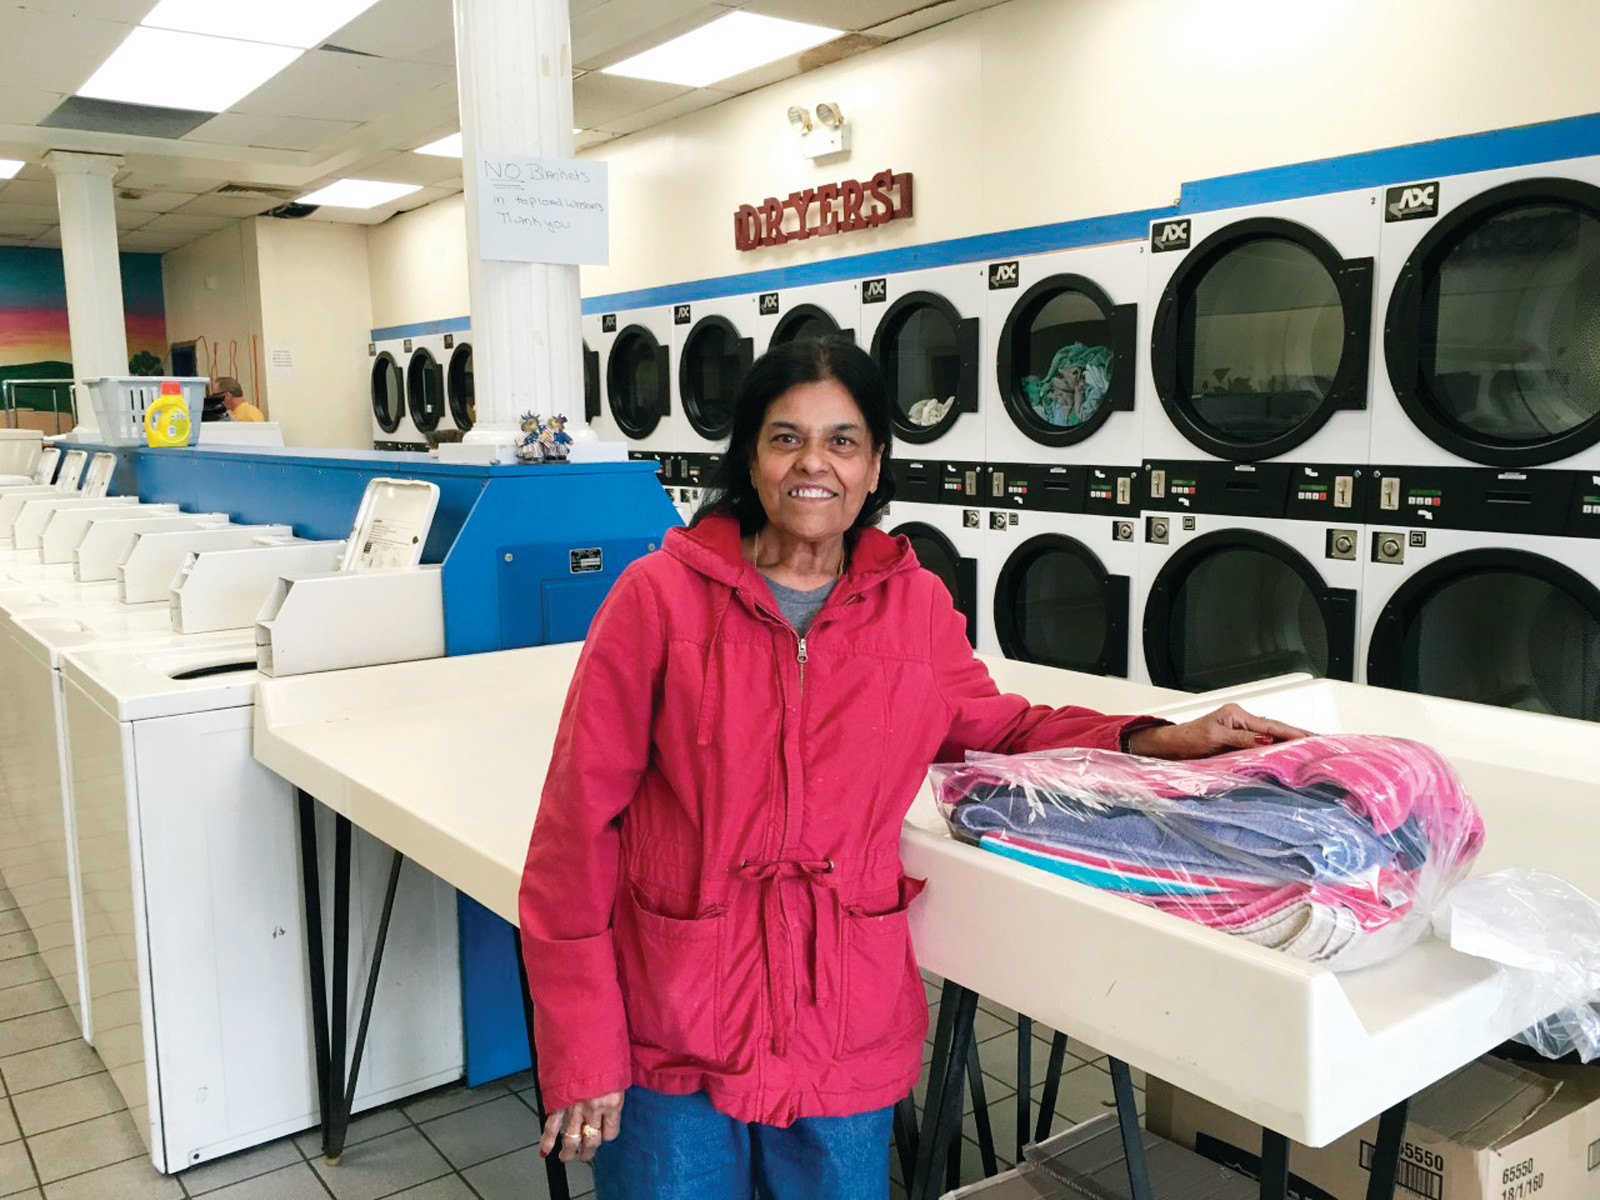 Meet Kaushal Jain, co-owner of Jain's Laundry ~ a fully-equipped laundromat on Route 44 where customers can do their own wash or take advantage of Kaushal's meticulous wash/dry and fold service.